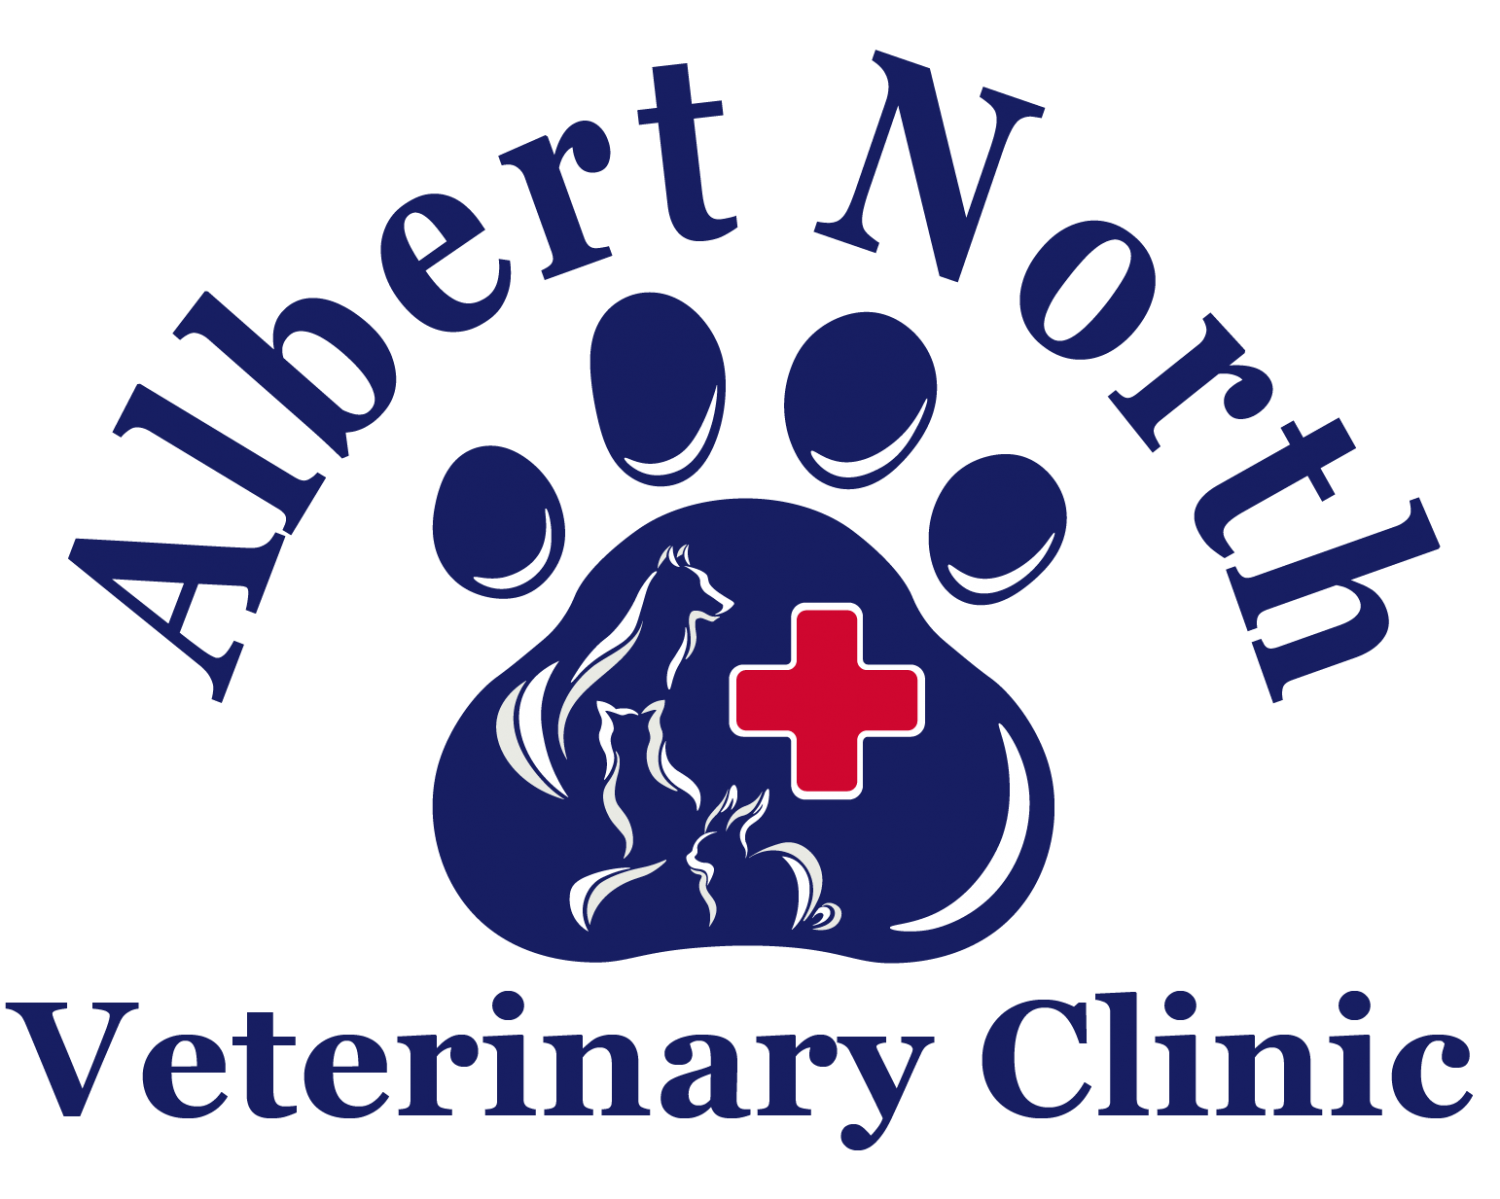 Albert North Veterinary Clinic - Veterinarians serving Regina, SK - Welcome to our site!